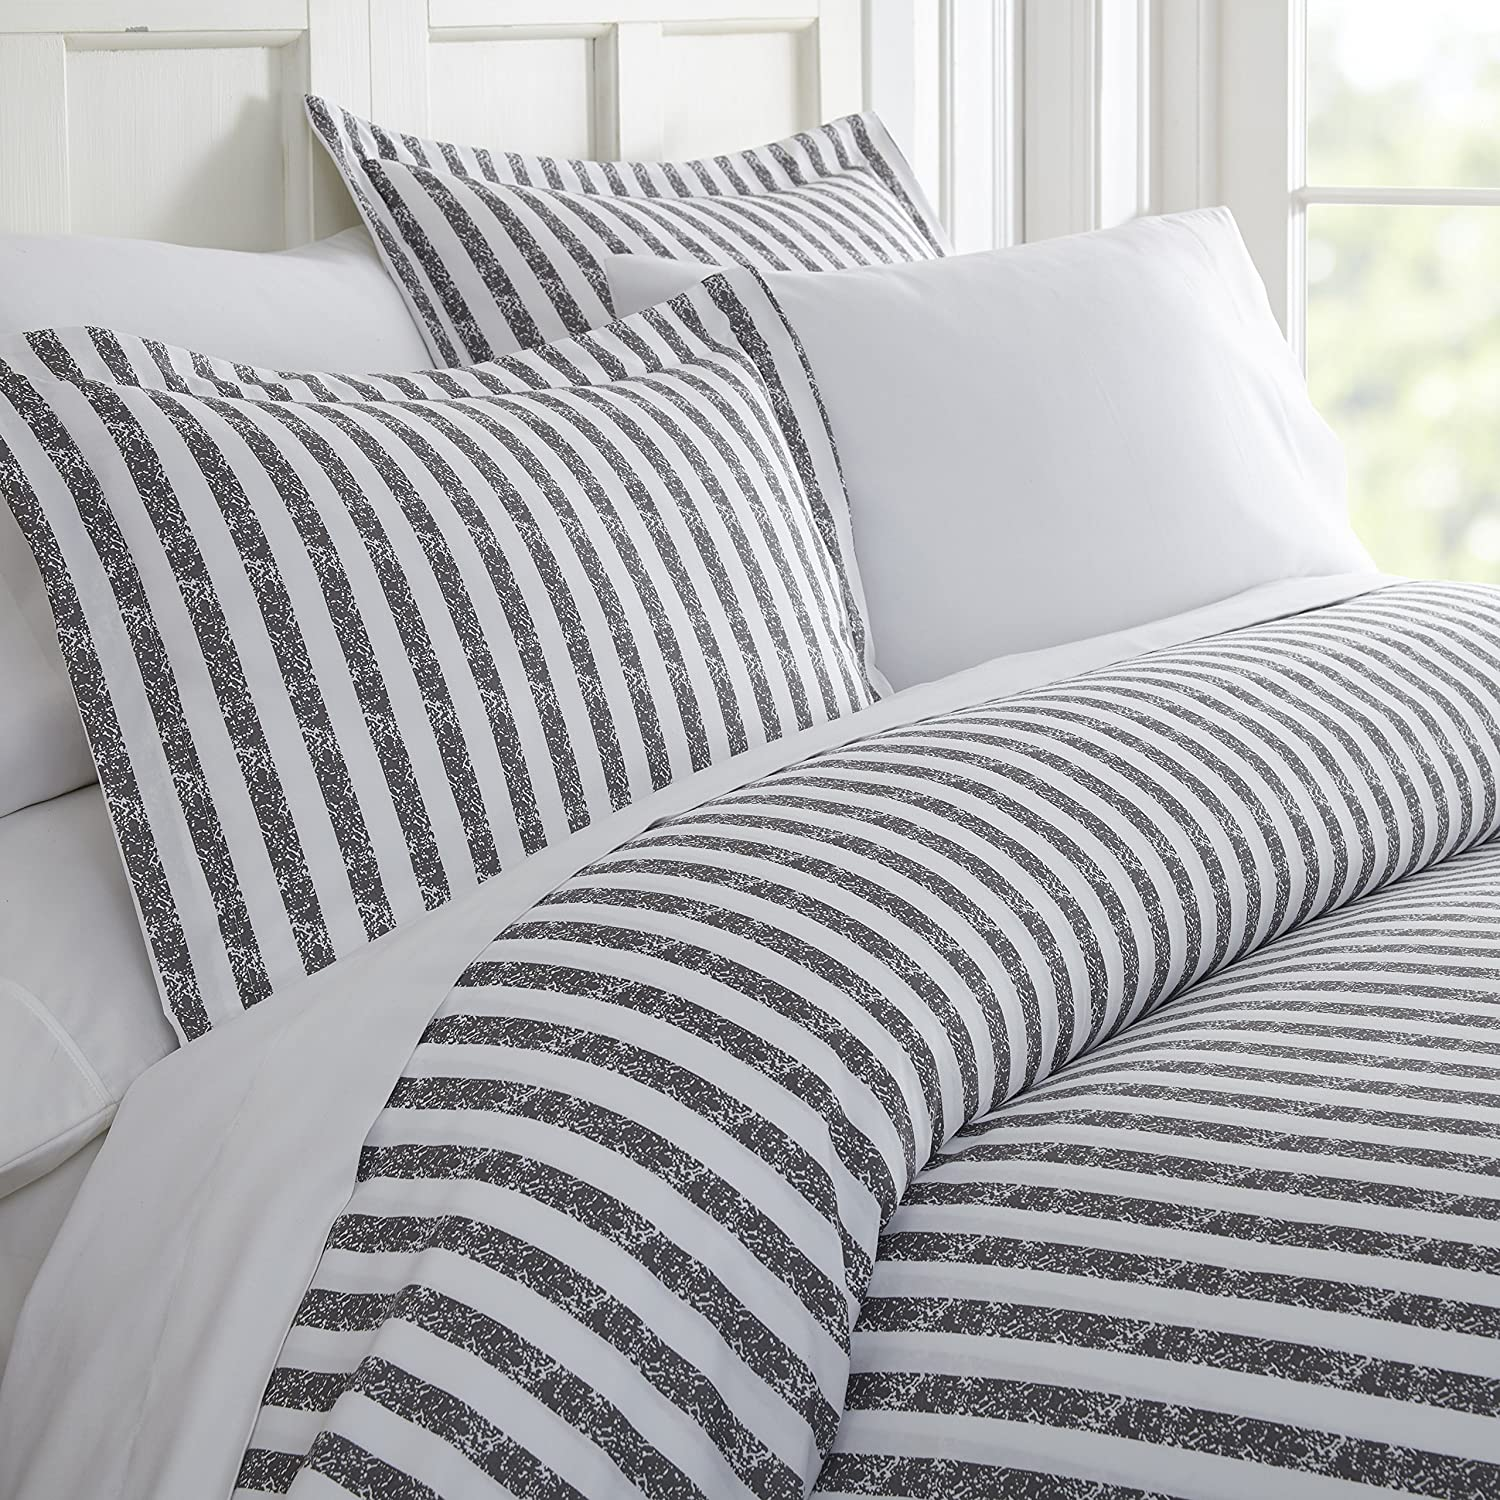 ienjoy Home 3 Piece Rugged Stripes Patterned Home Collection Premium Ultra Soft Duvet Cover Set, Queen, Gray